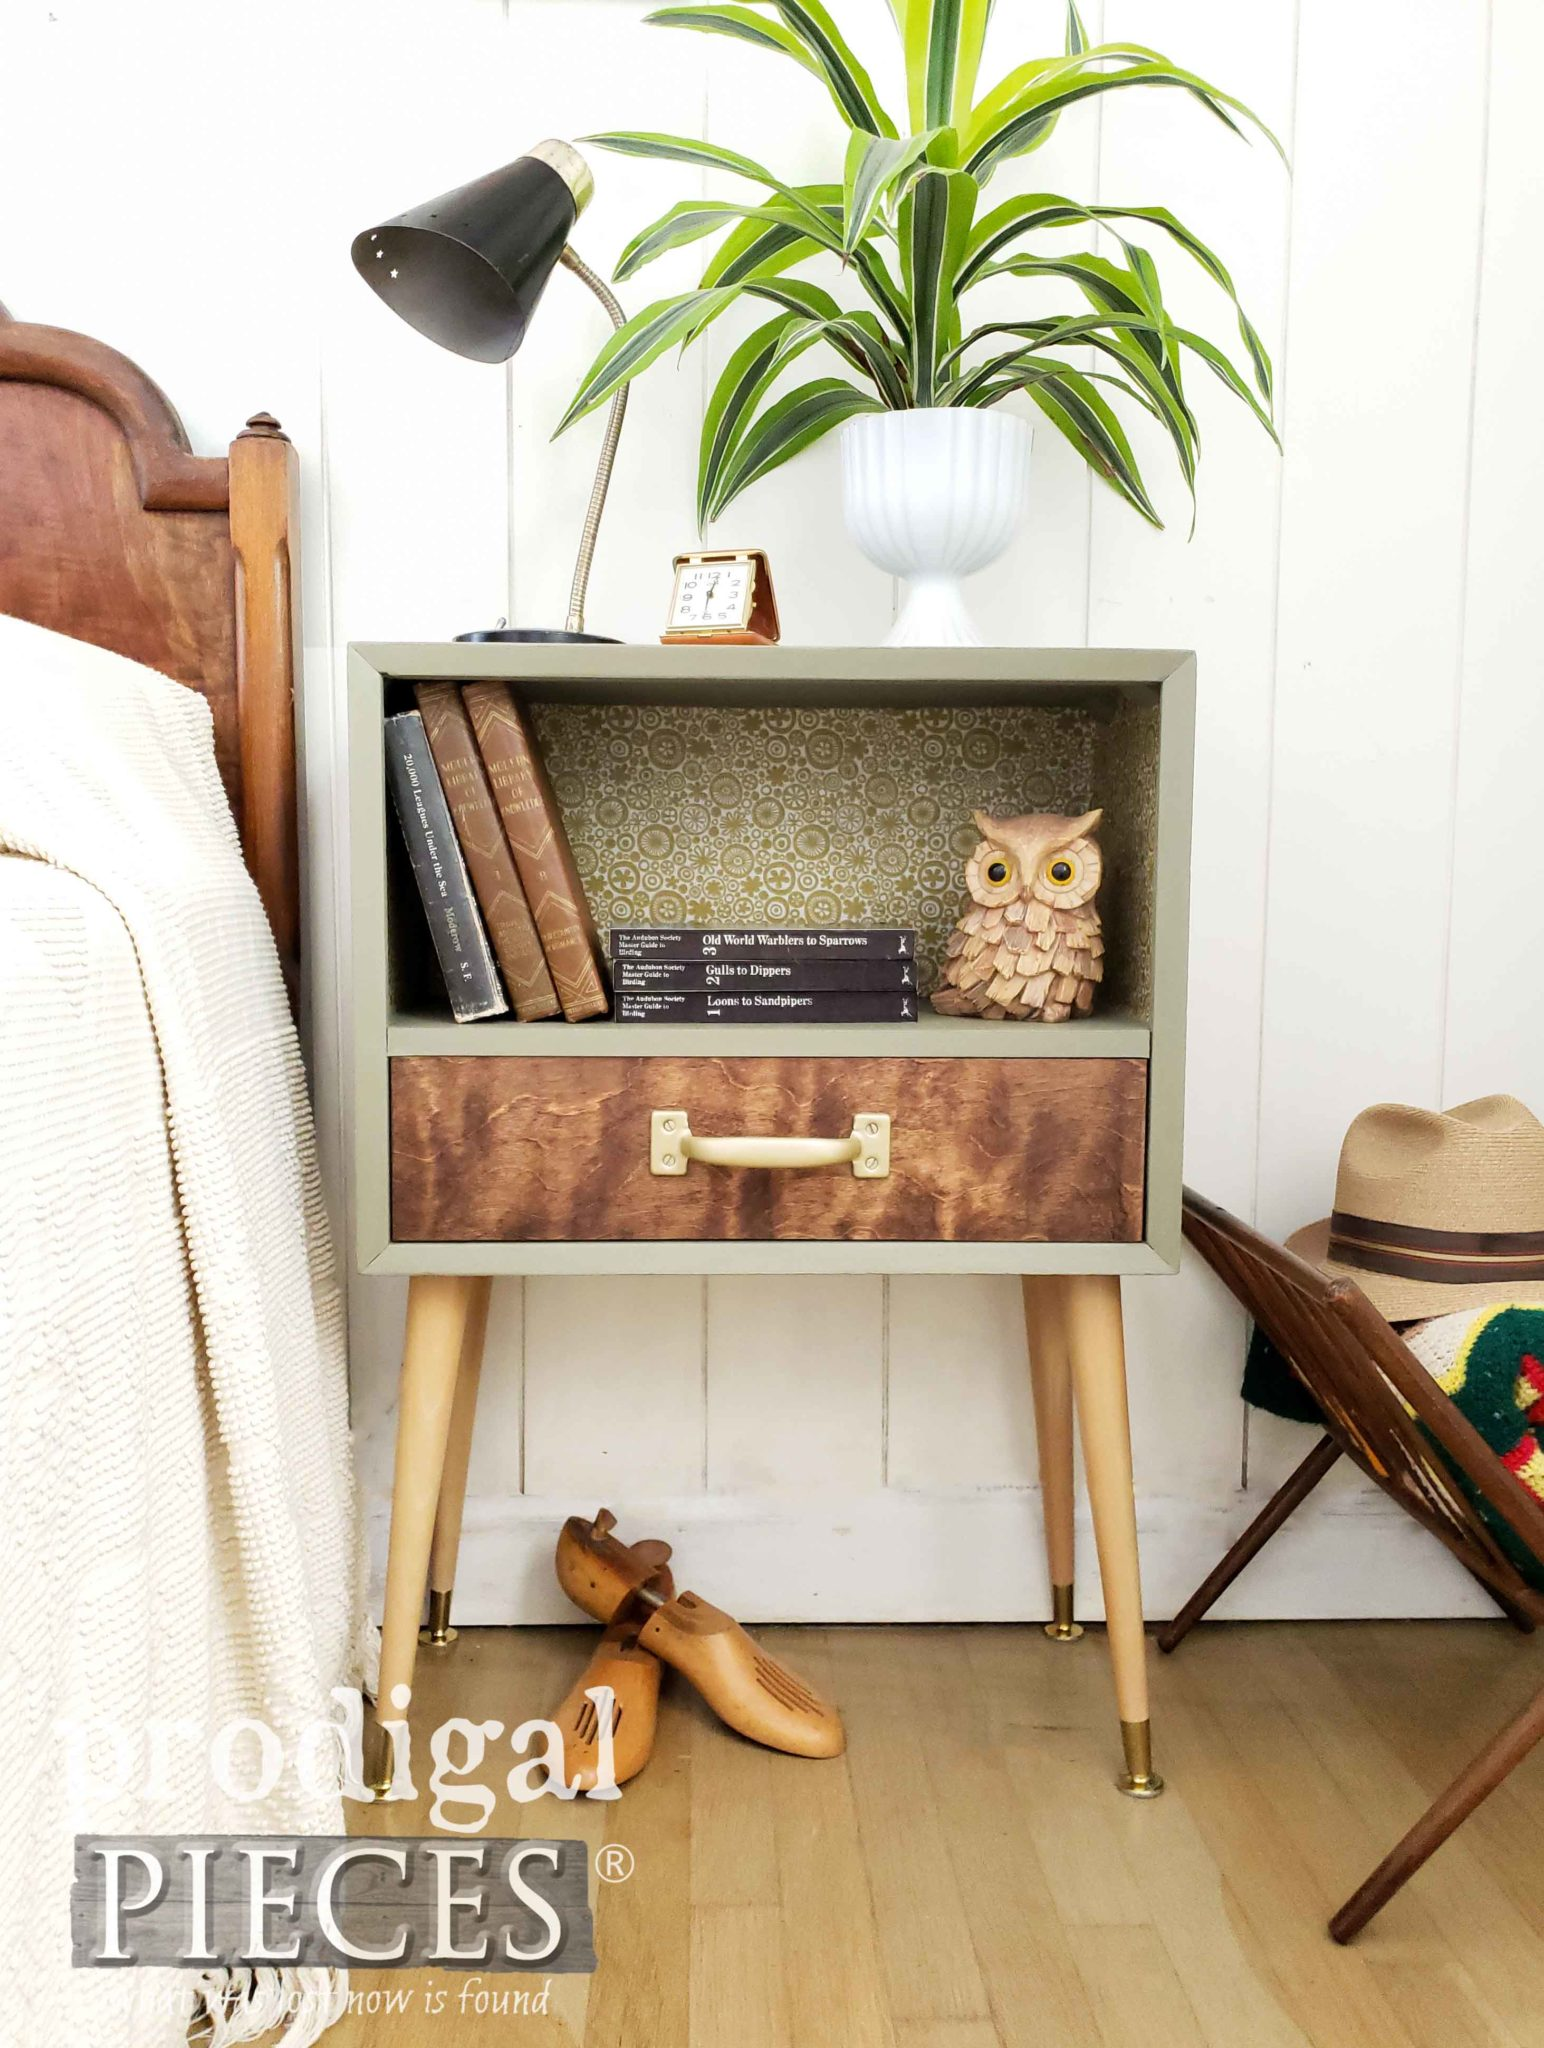 Upcycled Mid Century Modern Nightstand Created by Larissa of Prodigal Pieces | prodigalpieces.com